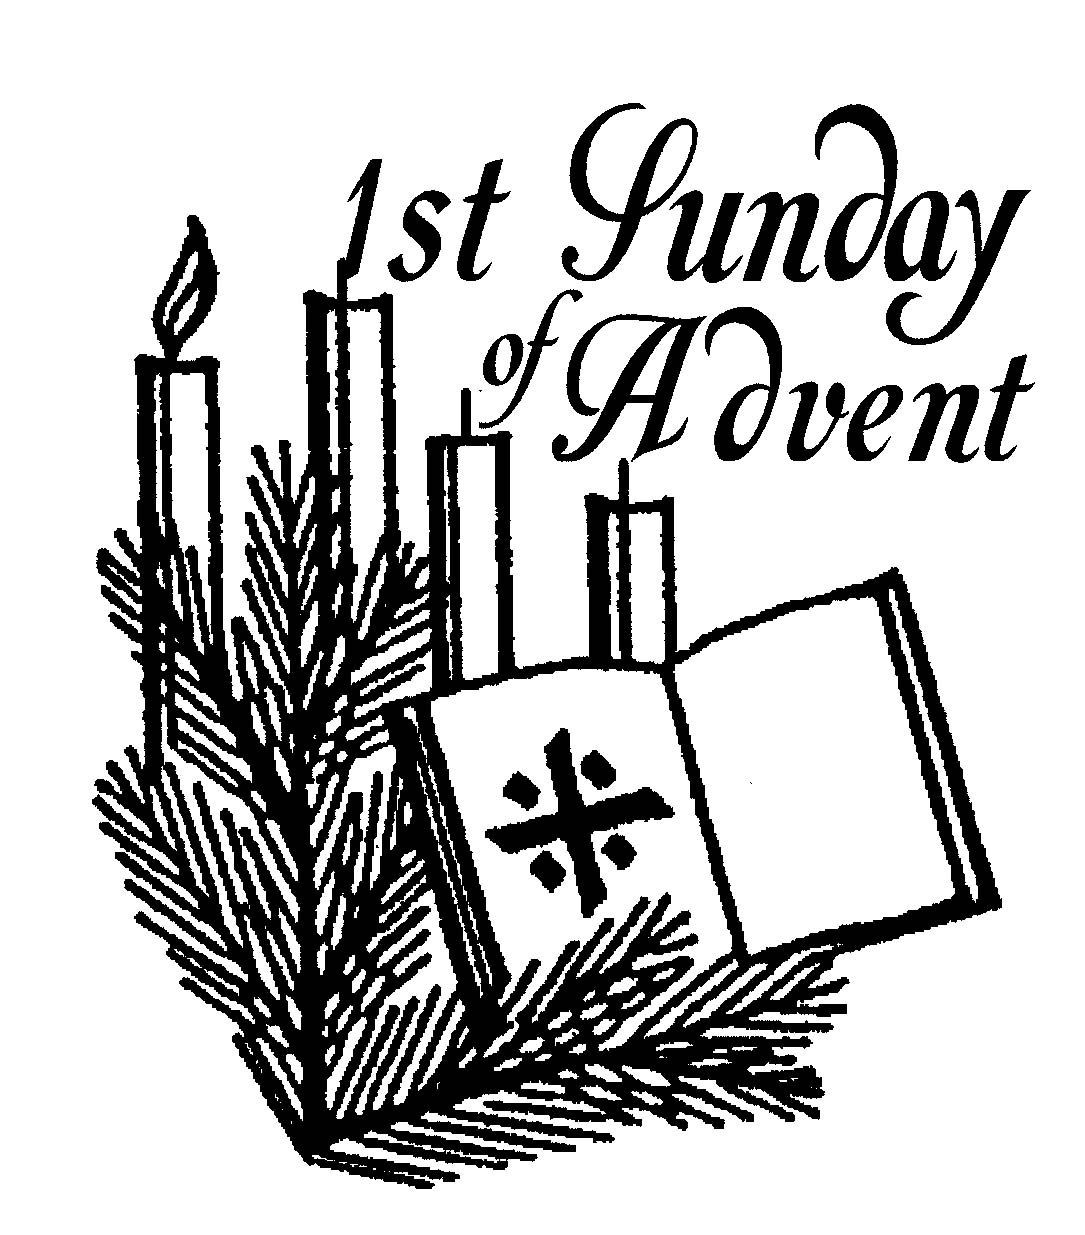 14 cliparts for free. Download Advent clipart emmanuel catholic and.